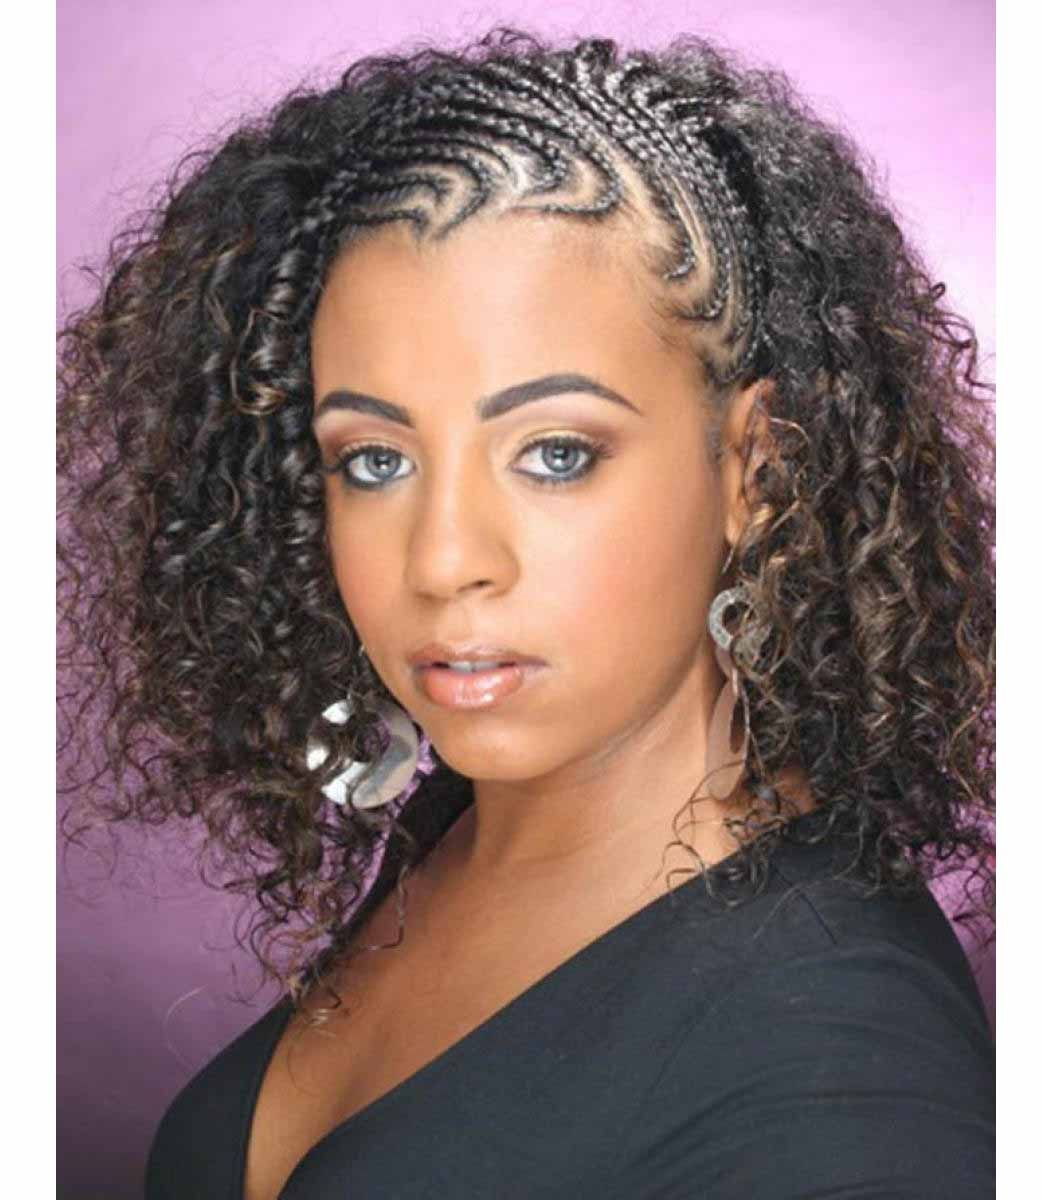 Blackbraidedjpg   Hairstyles  Pinterest